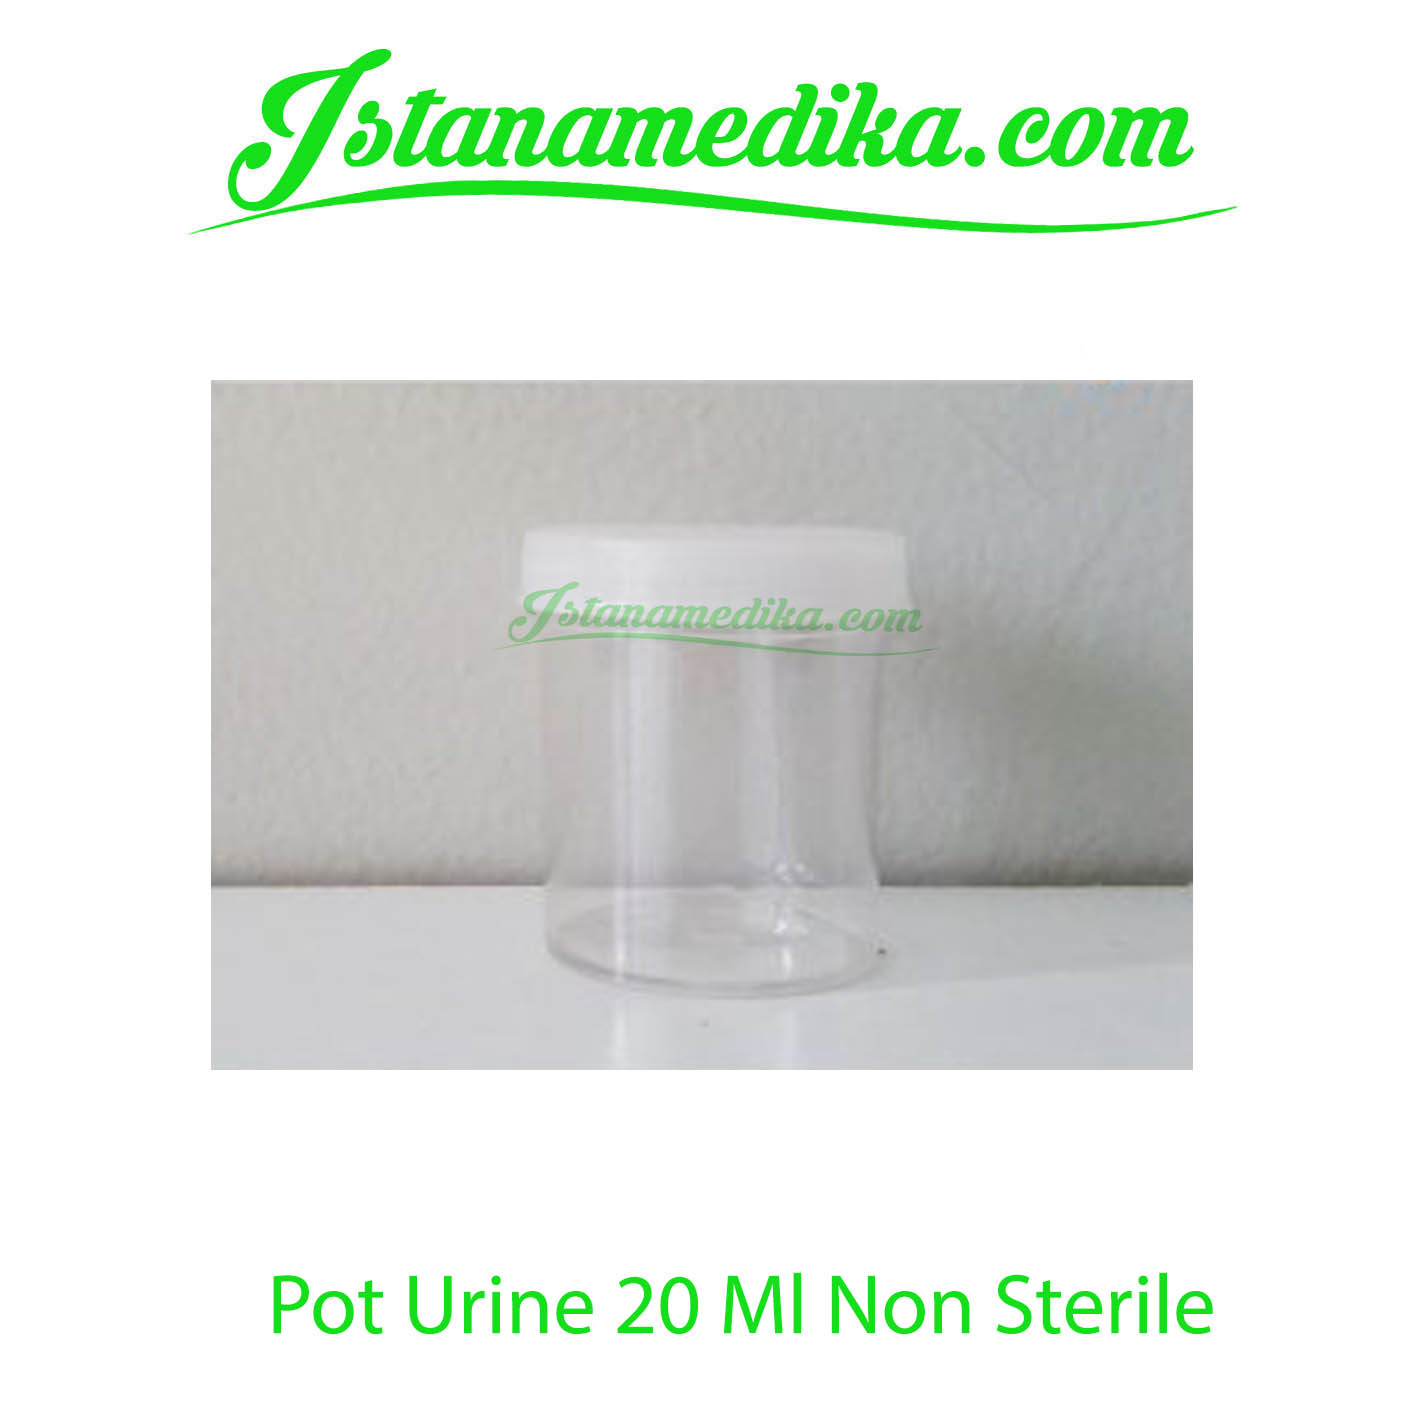 Grosir Pot Urine 20 Ml Non Sterile Jawa Barat, Grosir Pot Urine 20 Ml Non Sterile Jawa Timur, Toko Pot Urine 20 Ml Non Sterile Lengkap, Toko Jual Pot Urine 20 Ml Non Sterile Harga Murah, Toko jual Pot Urine 20 Ml Non Sterile Papua, Tempat Beli Pot Urine 20 Ml Non Sterile Berkualitas, Tempat Beli Pot Urine 20 Ml Non Sterile Murah, Tempat Beli Pot Urine 20 Ml Non Sterile, Pot Urine 20 Ml Non Sterile, Distributor Pot Urine 20 Ml Non Sterile Kalimantan, Distributor Pot Urine 20 Ml Non Sterile Sumatra, Agen Pot Urine 20 Ml Non Sterile Harga Murah, Agen Pot Urine 20 Ml Non Sterile Lengkap, Agen Pot Urine 20 Ml Non Sterile Terjangkau, Supplier Pot Urine 20 Ml Non Sterile Harga Murah, Supplier Pot Urine 20 Ml Non Sterile Tangerang,Distributor Pot Urine 20 Ml Non Sterile Harga Murah, Distributor Pot Urine 20 Ml Non Sterile Di Ciputat, Distributor Pot Urine 20 Ml Non Sterile Jakarta, Distributor Pot Urine 20 Ml Non Sterile Malang, Distributor Pot Urine 20 Ml Non Sterile Solo, Distributor Pot Urine 20 Ml Non Sterile Jogja, Distributor Pot Urine 20 Ml Non Sterile Semarang, Distributor Pot Urine 20 Ml Non Sterile Kendal, Distributor Pot Urine 20 Ml Non Sterile Makassar, Distributor Pot Urine 20 Ml Non Sterile Palu, Distributor Pot Urine 20 Ml Non Sterile Padang, Distributor Pot Urine 20 Ml Non Sterile Sulawesi, Supplier Pot Urine 20 Ml Non Sterile Bintaro, Supplier Pot Urine 20 Ml Non Sterile Pamulang, Supplier Pot Urine 20 Ml Non Sterile Serpong, Grosir Pot Urine 20 Ml Non Sterile Harga Murah, Grosir Pot Urine 20 Ml Non Sterile Jawa Tengah.